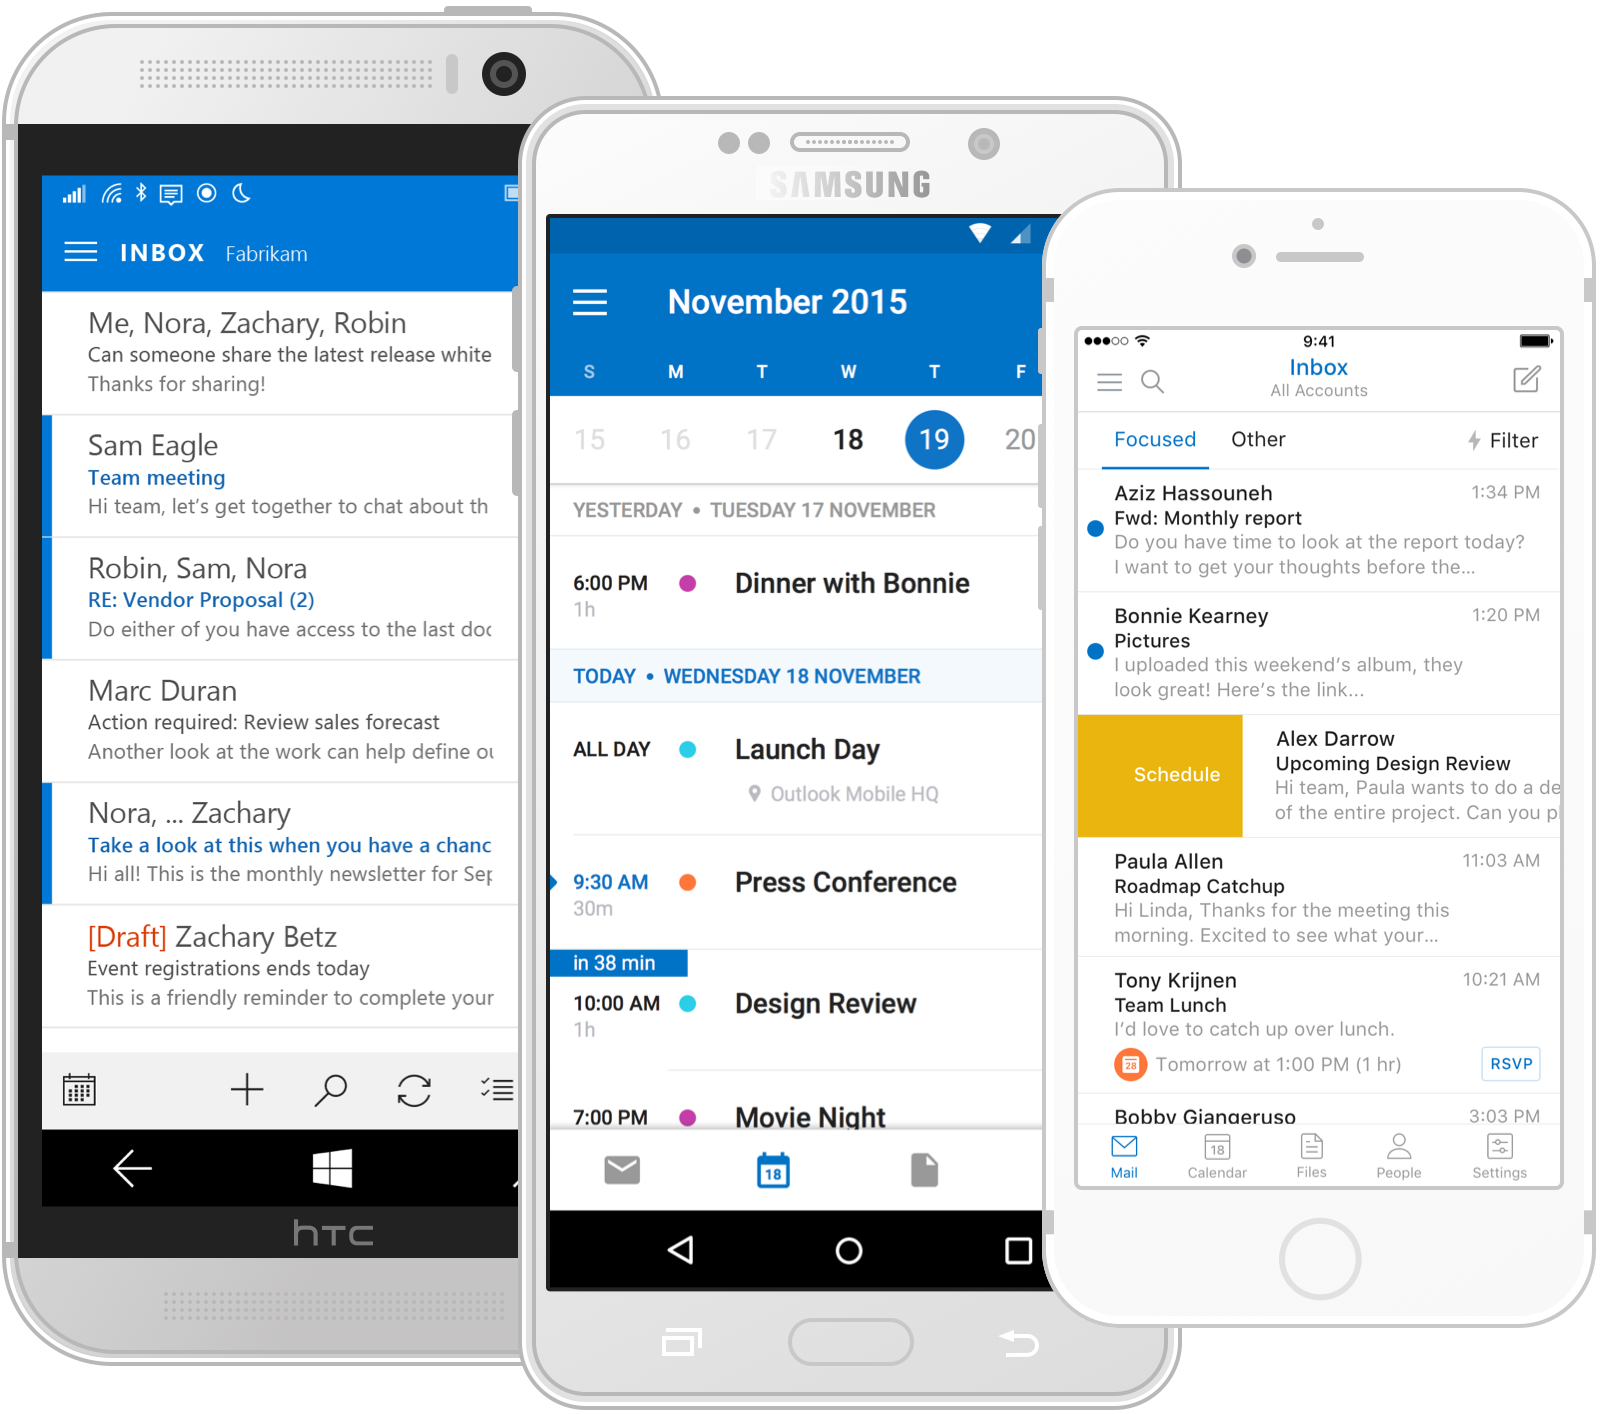 365 Outlook Login Mail - Outlook mobile is available on windows phone iphones and android devices